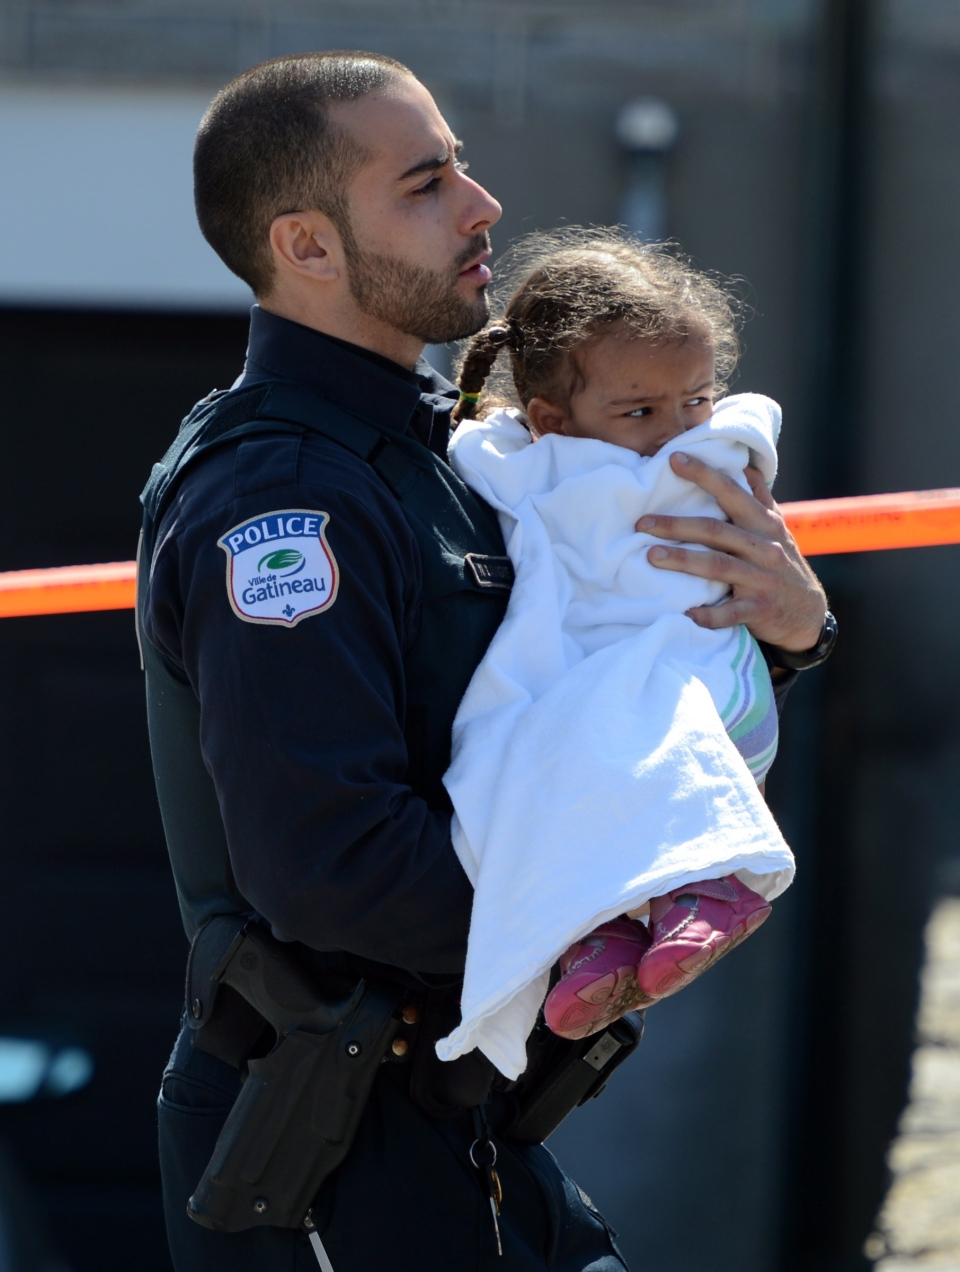 Police carry children from a safehouse to waiting parents and guardians after a shooting at a daycare in Gatineau, Que., on Friday April 5, 2013. (Sean Kilpatrick / THE CANADIAN PRESS)